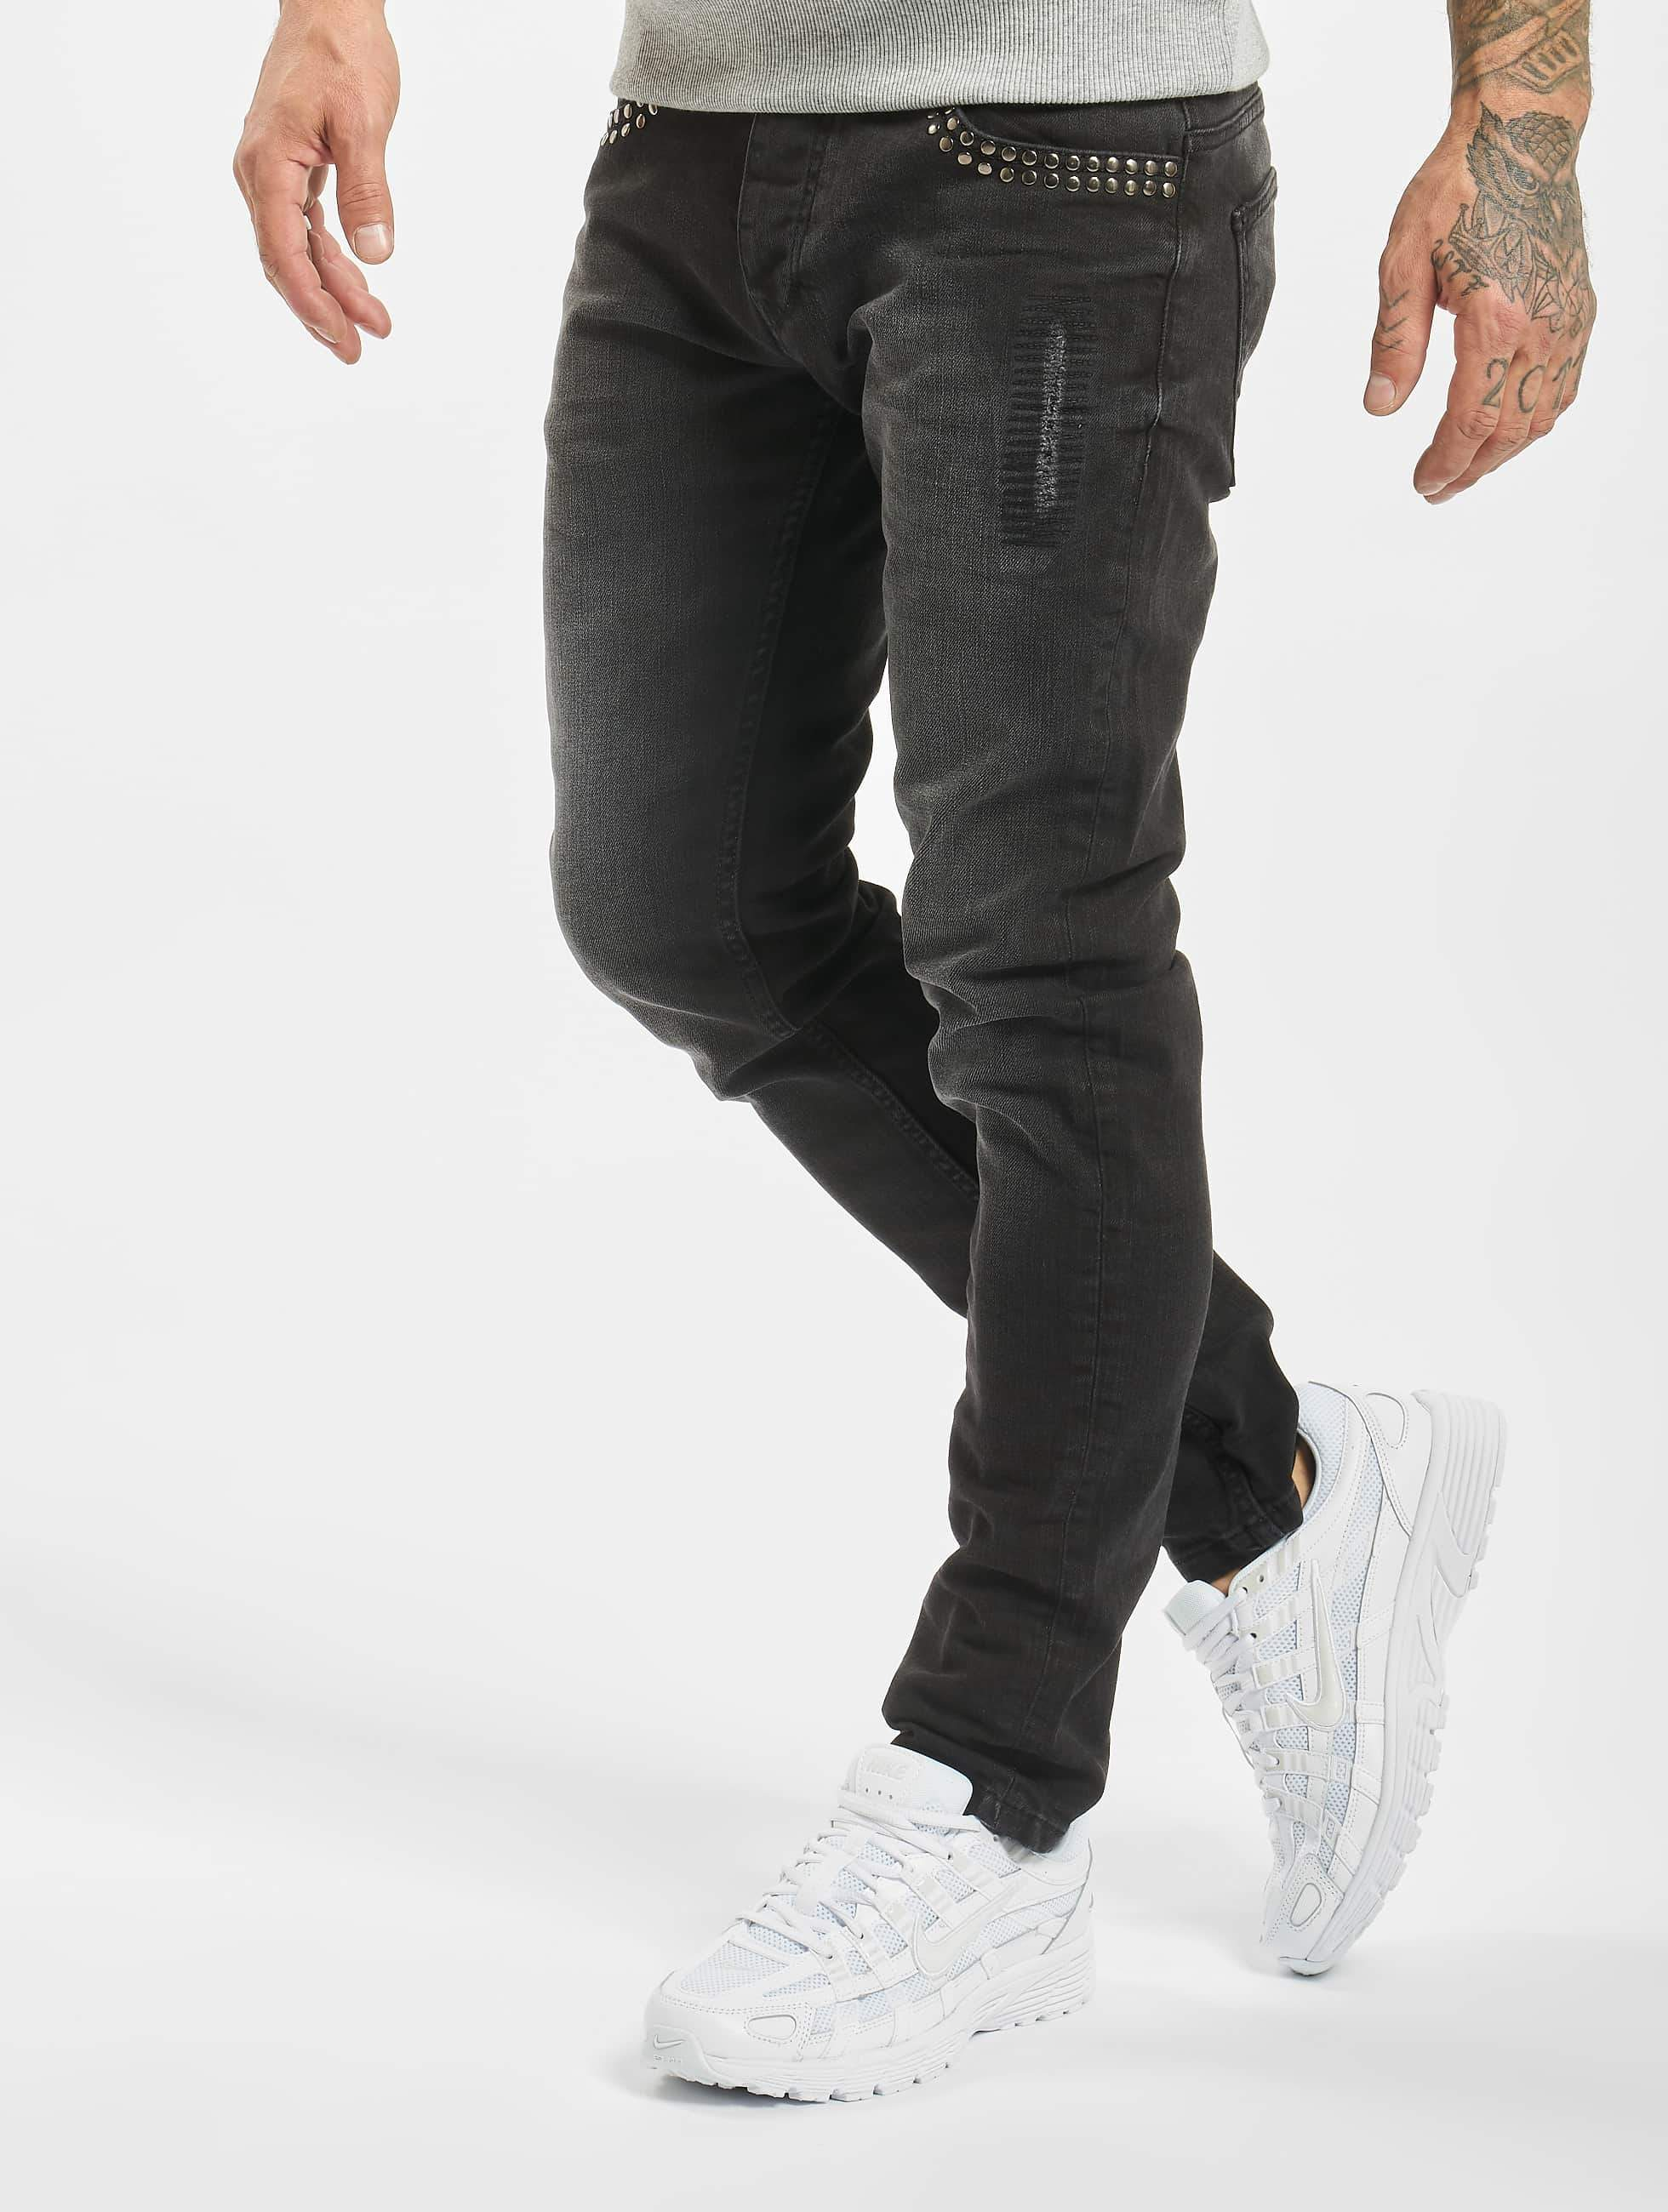 2Y / Skinny Jeans Rivet in black W 38